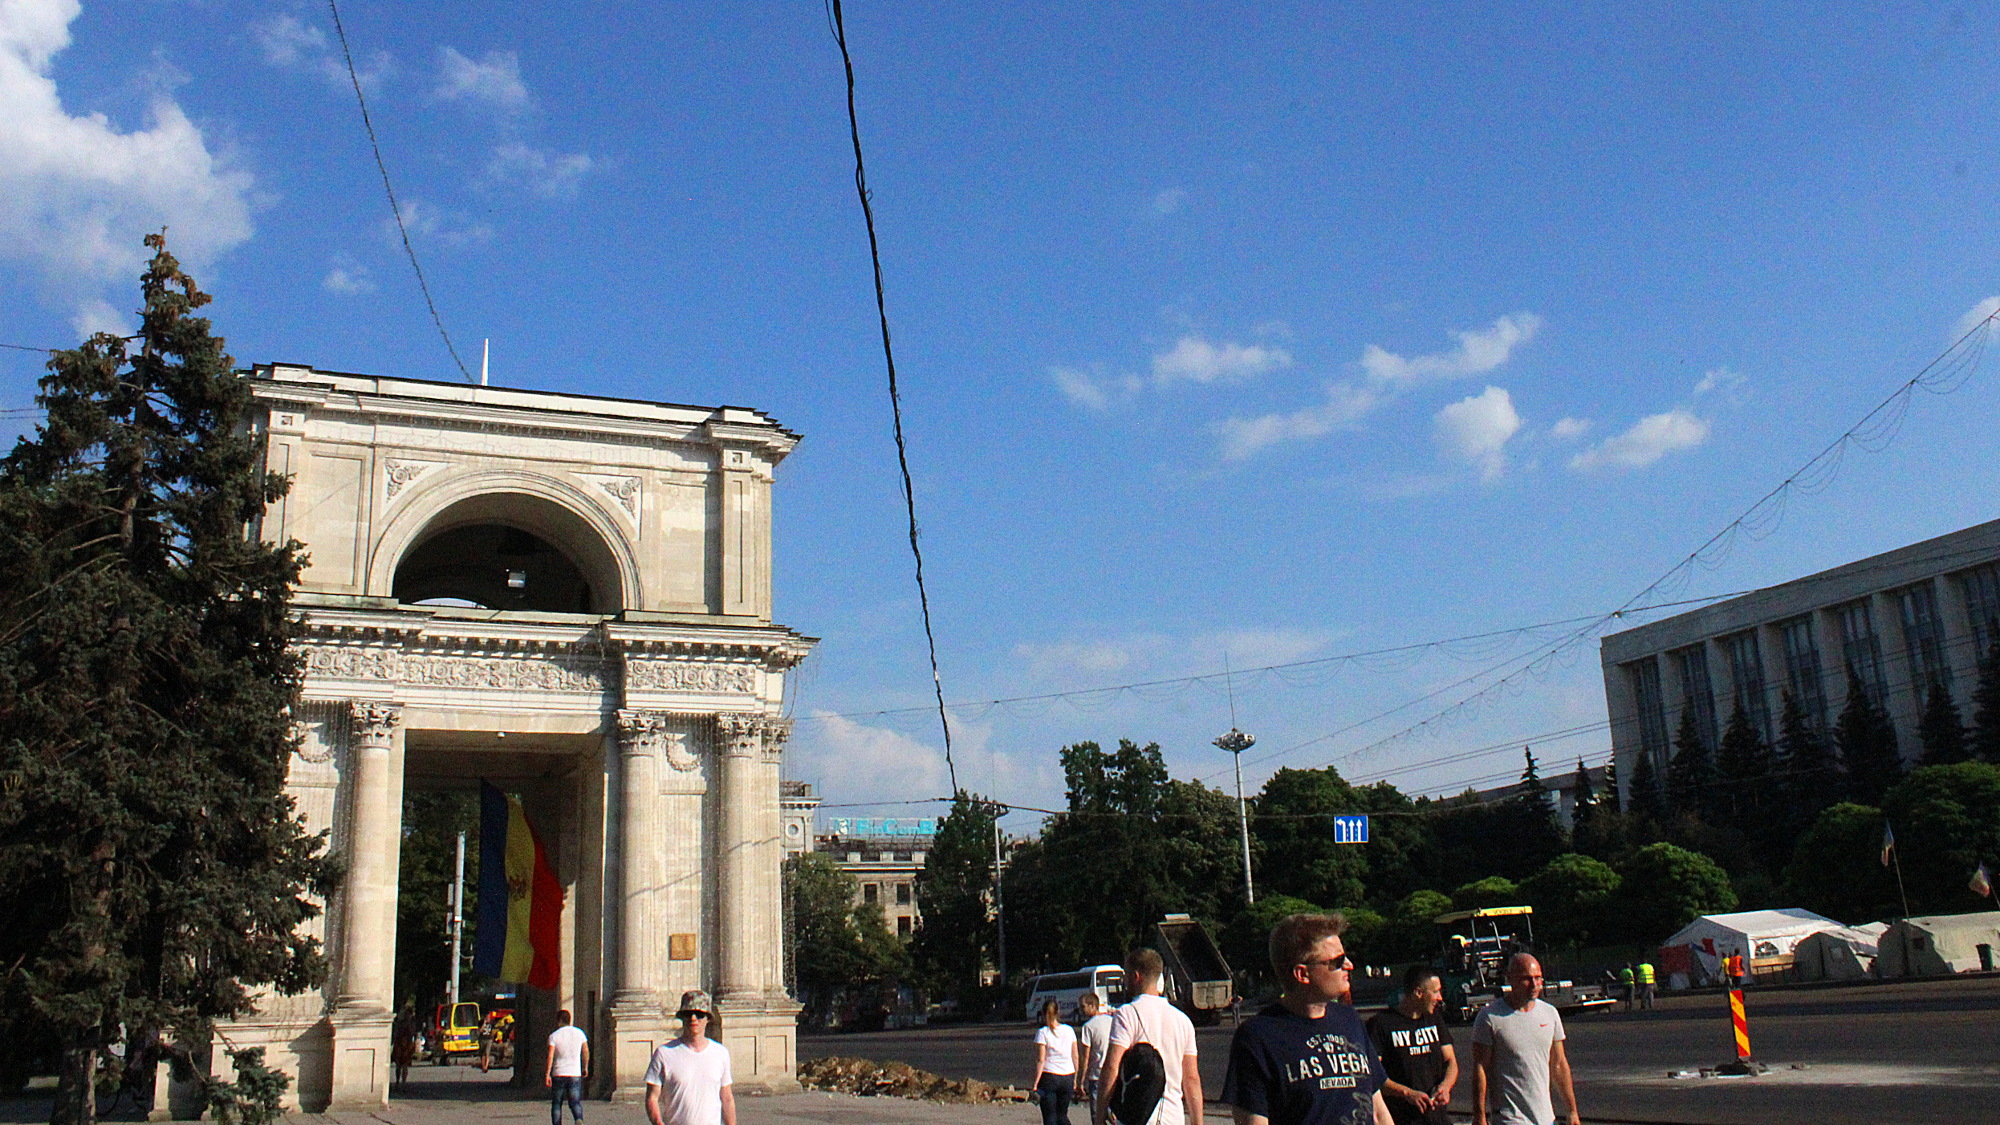 Moldova travel experience. What is Moldova famous for? The Arc de Triomphe of Chișinău, Moldova. The Arc de Triumph of Chisinau, Moldova.